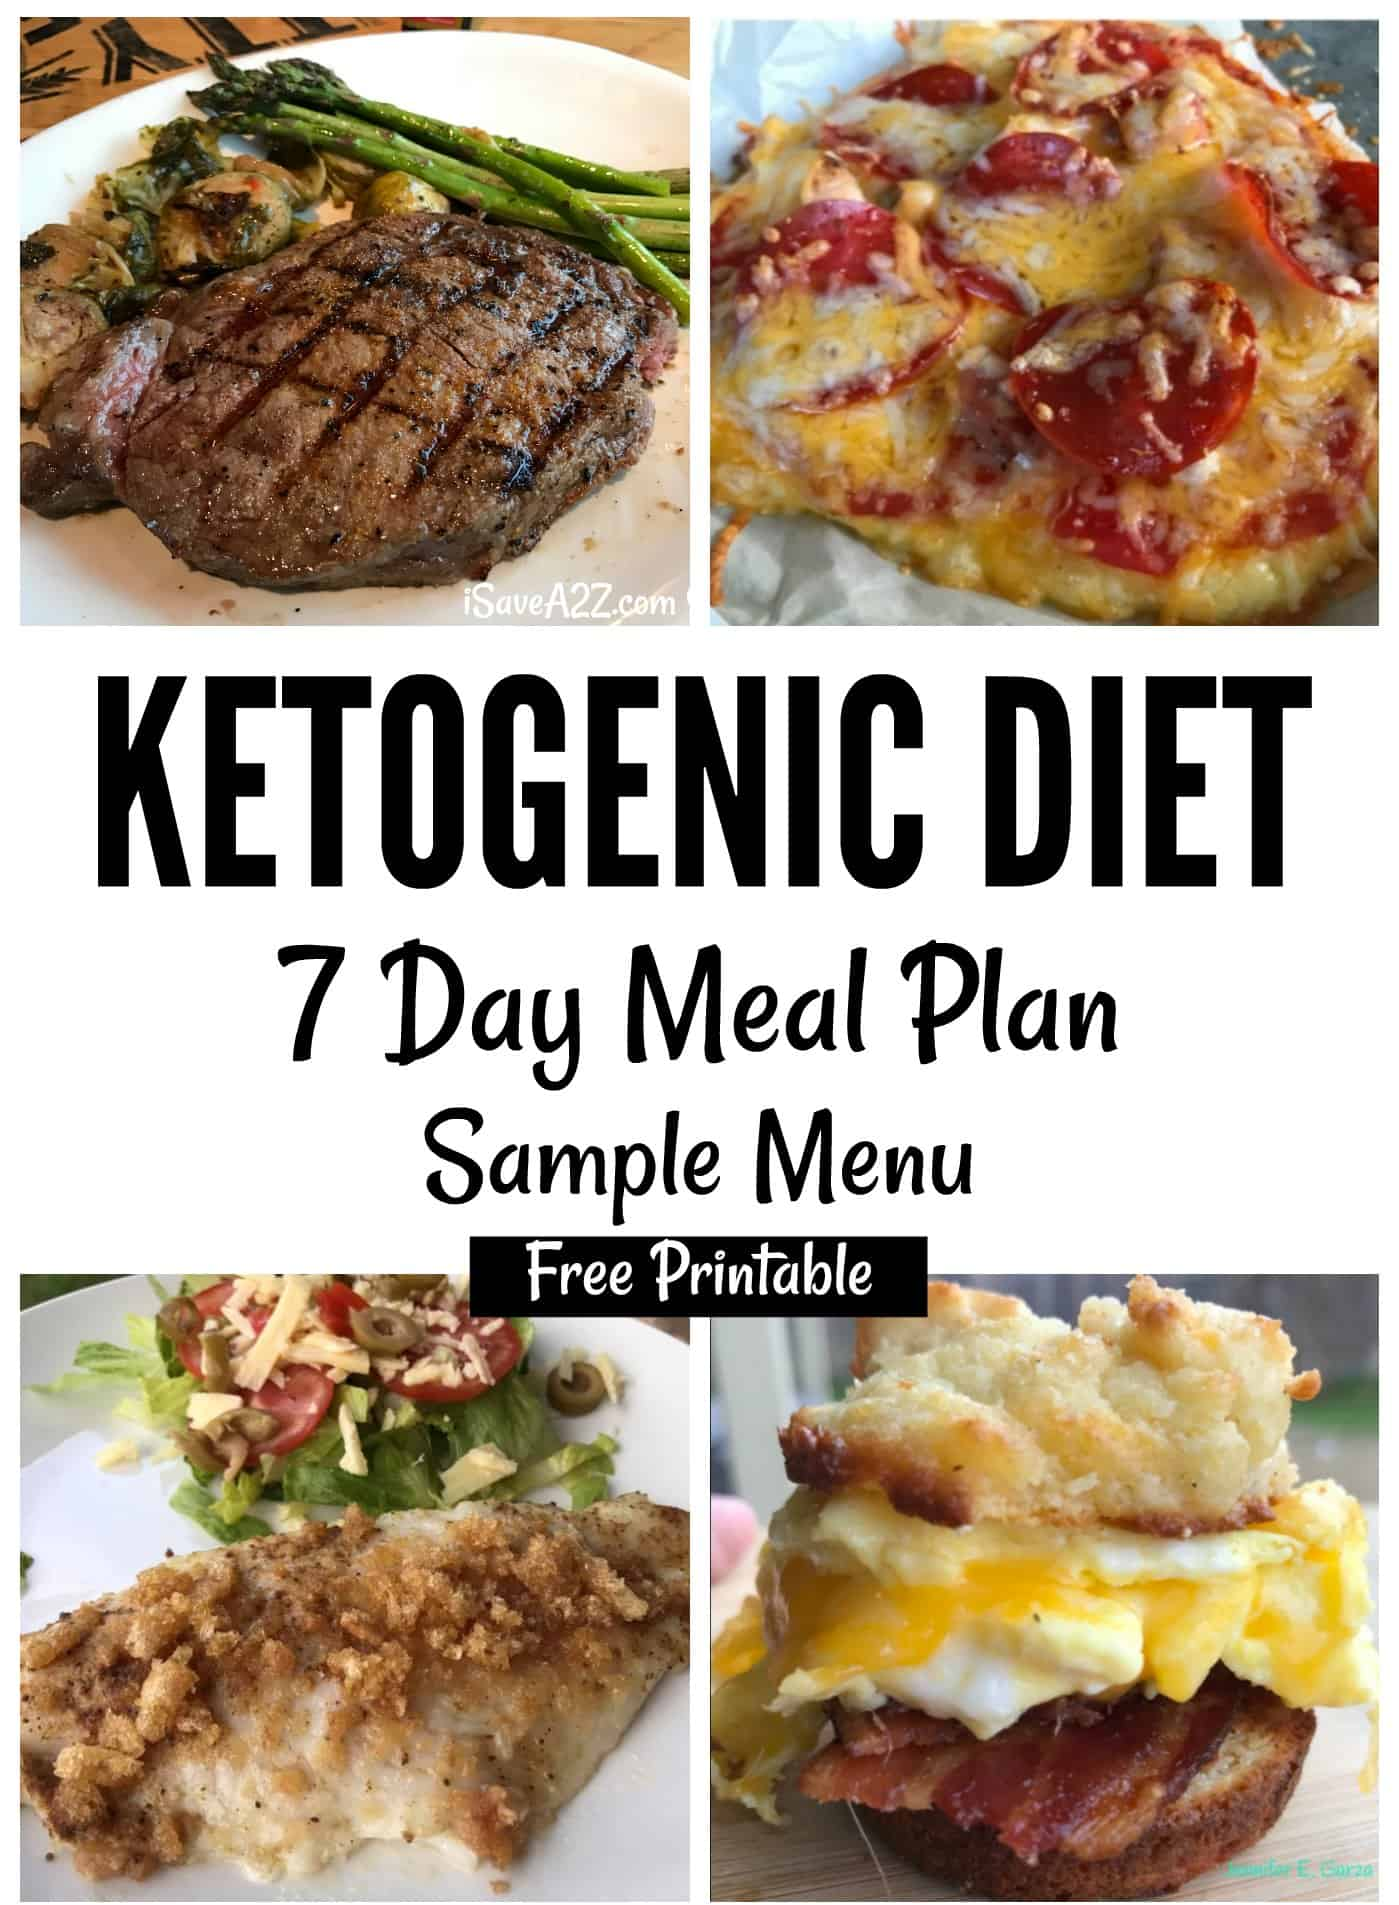 free sample of a keto diet